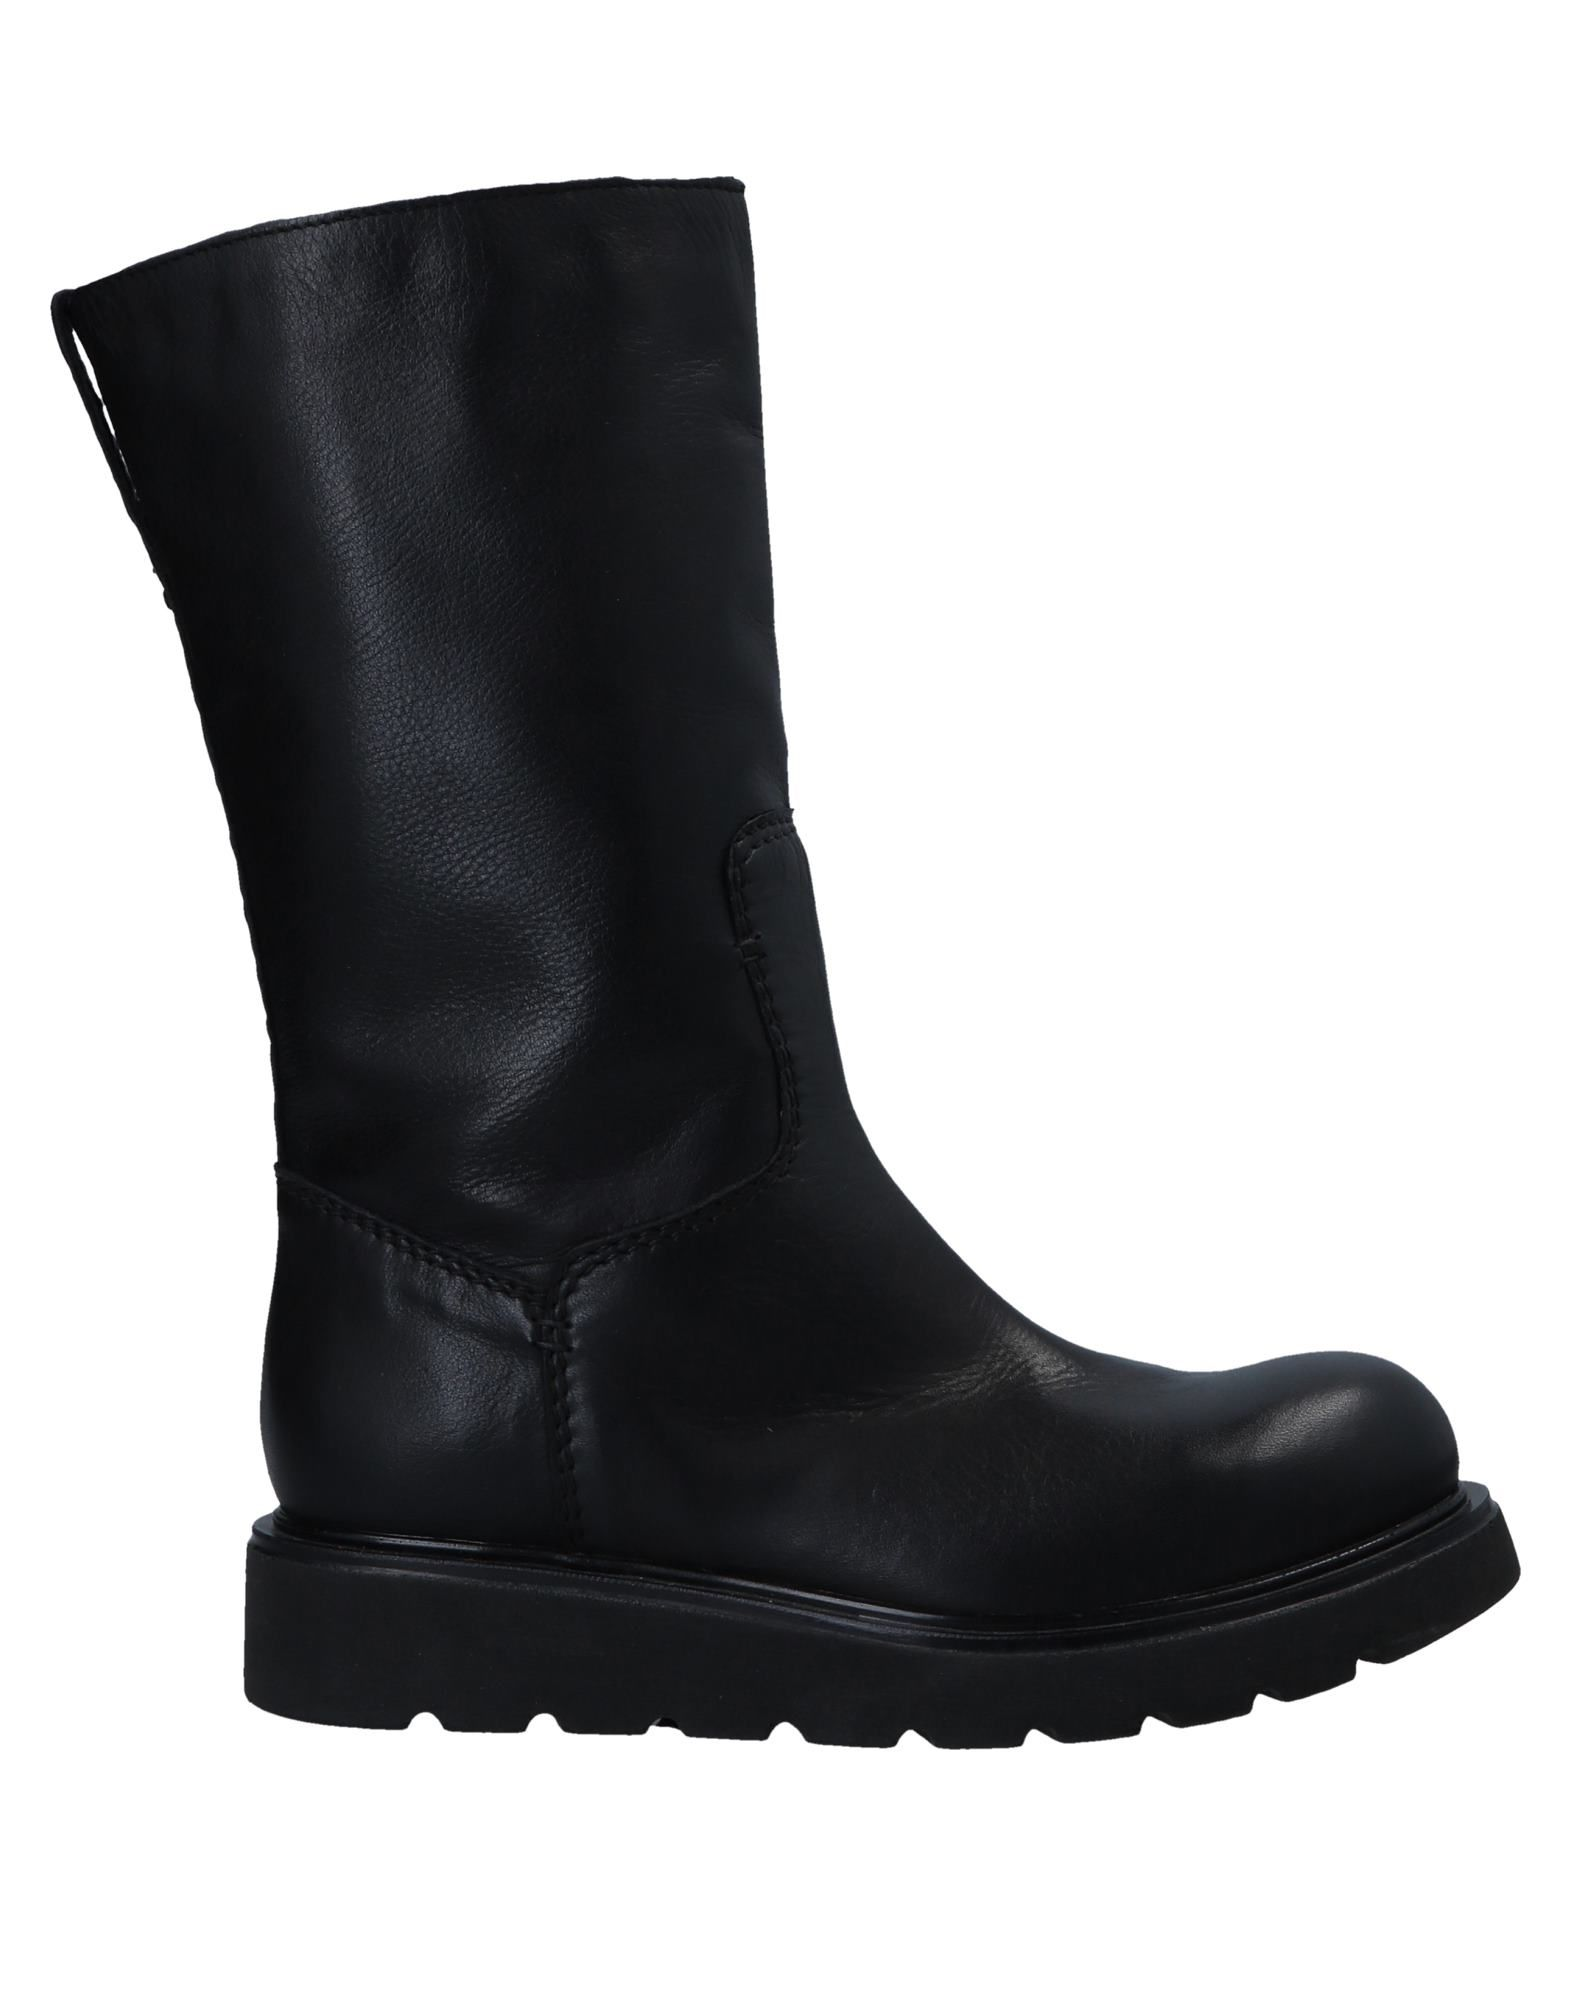 Stilvolle billige Schuhe Strategia Stiefelette Damen  11545775WQ